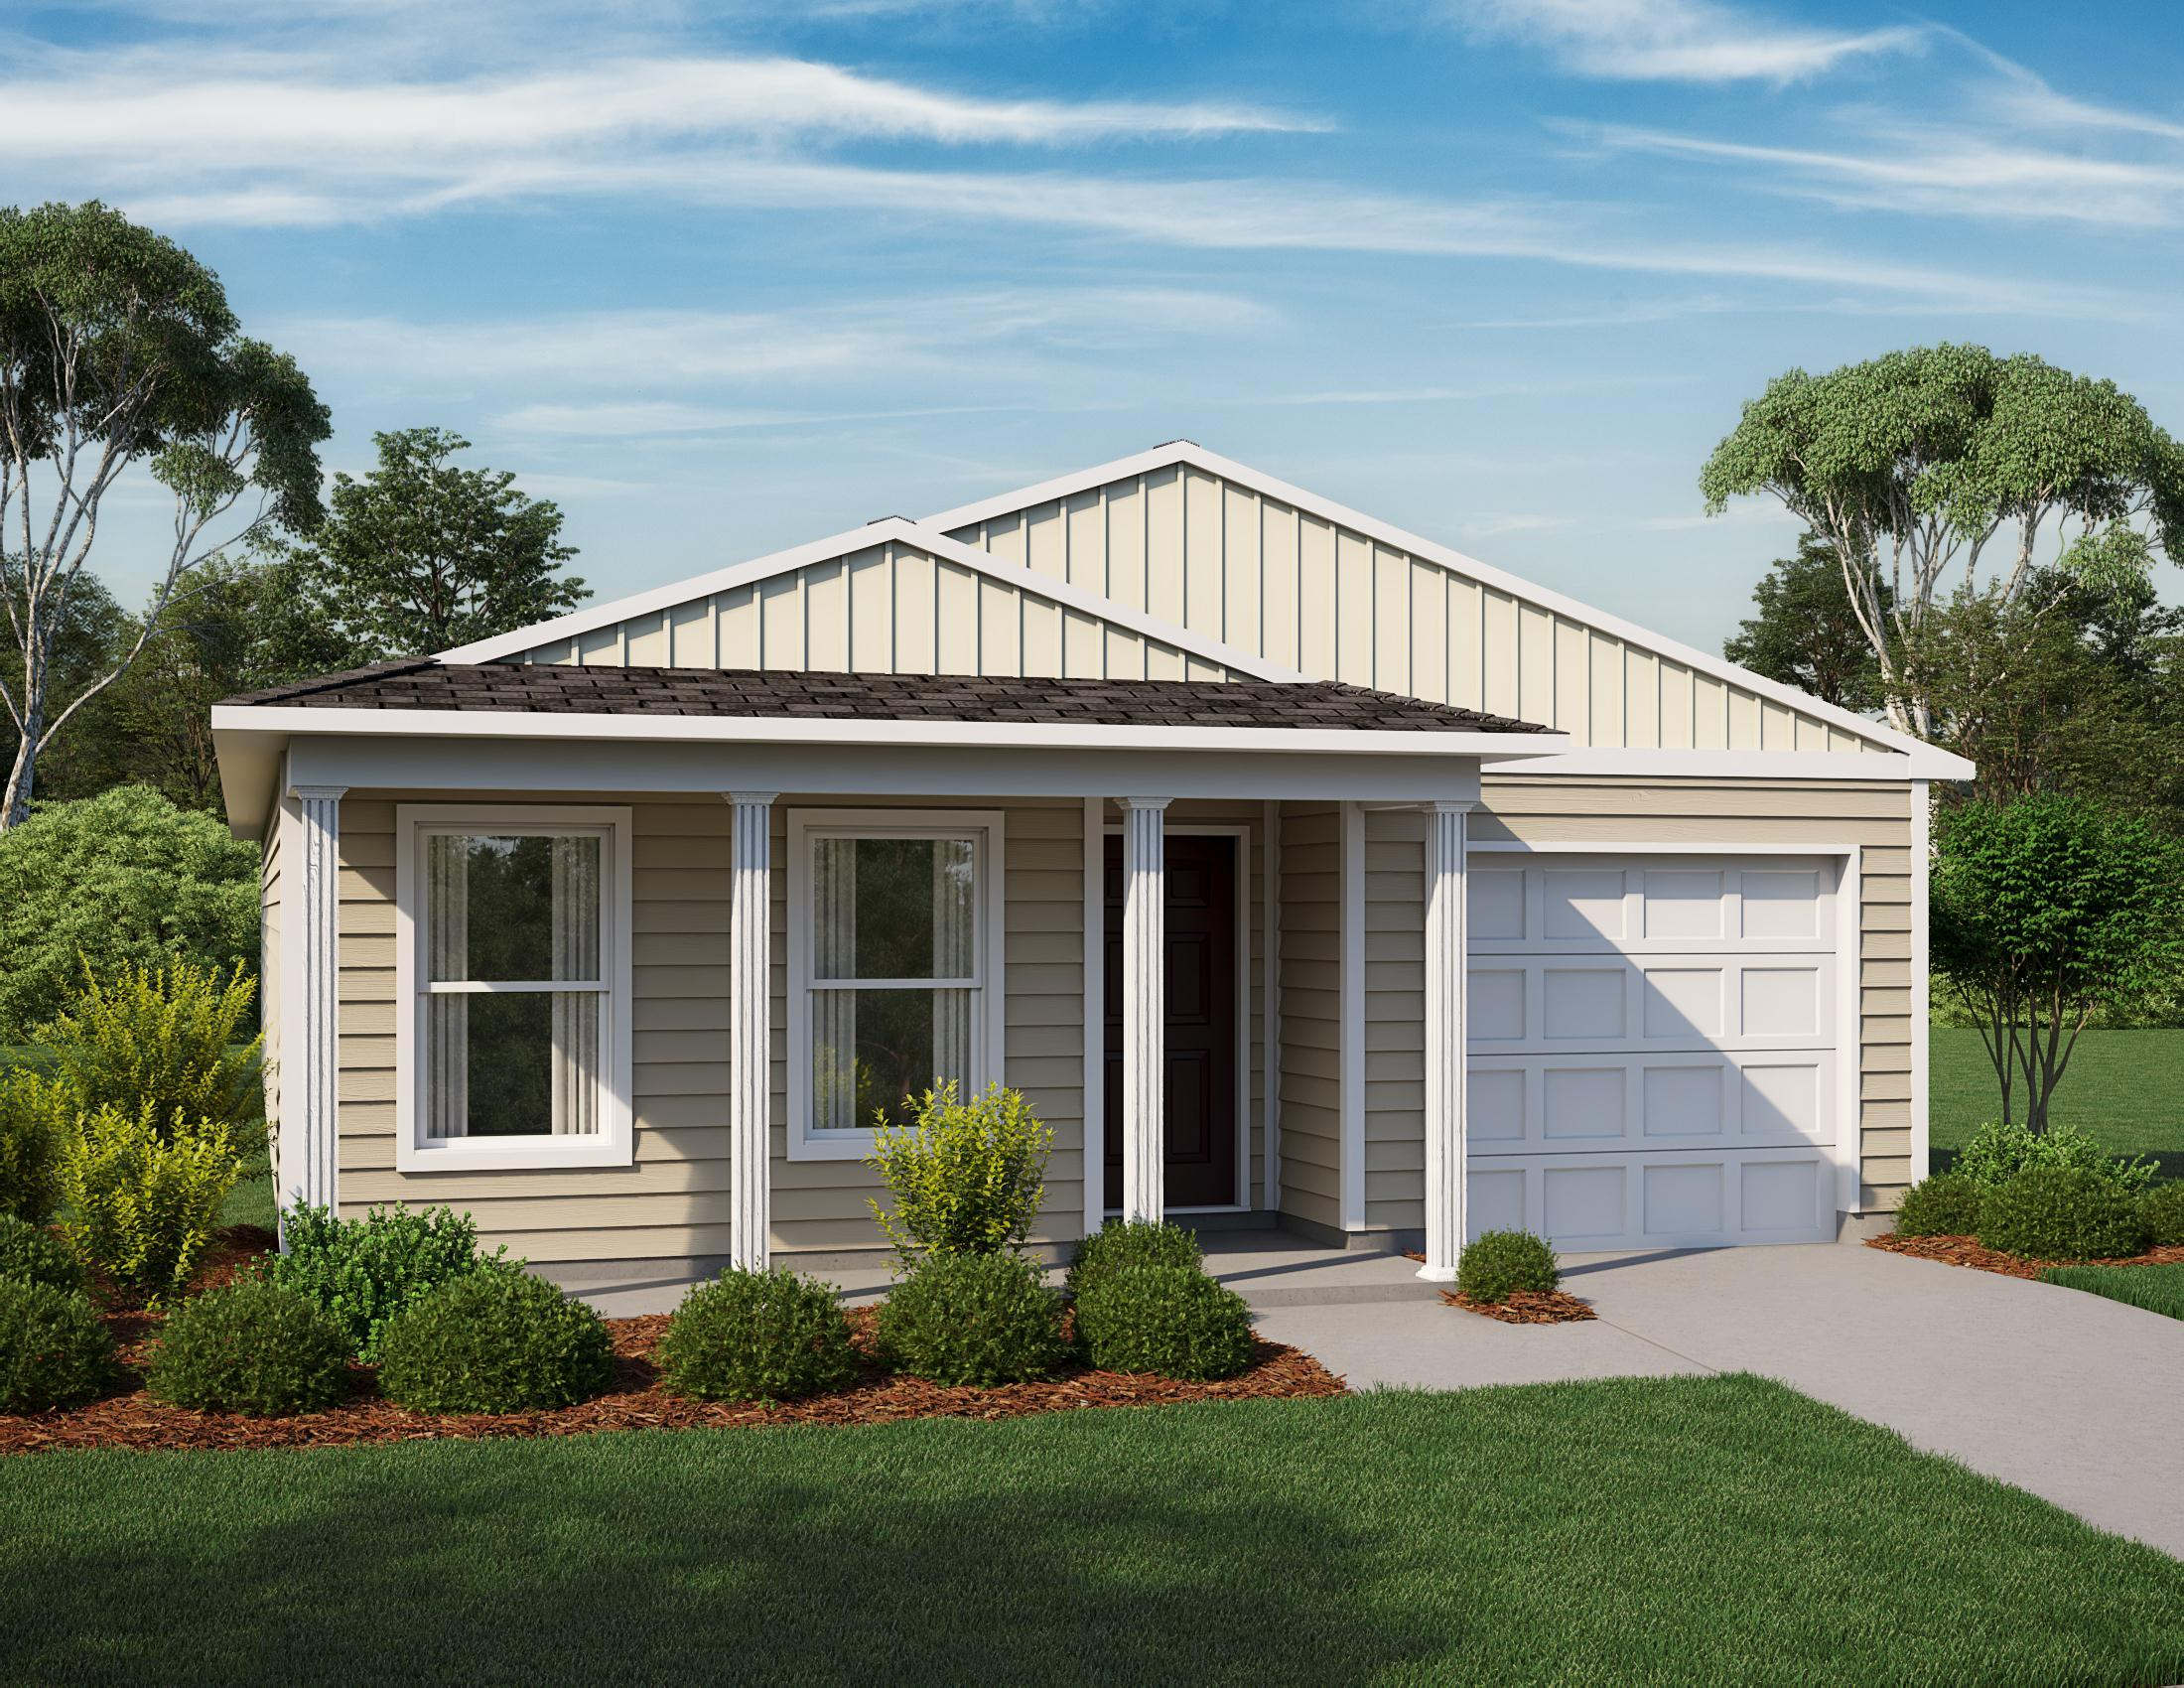 New Construction Homes & Plans in Haymount, NC | 719 Homes